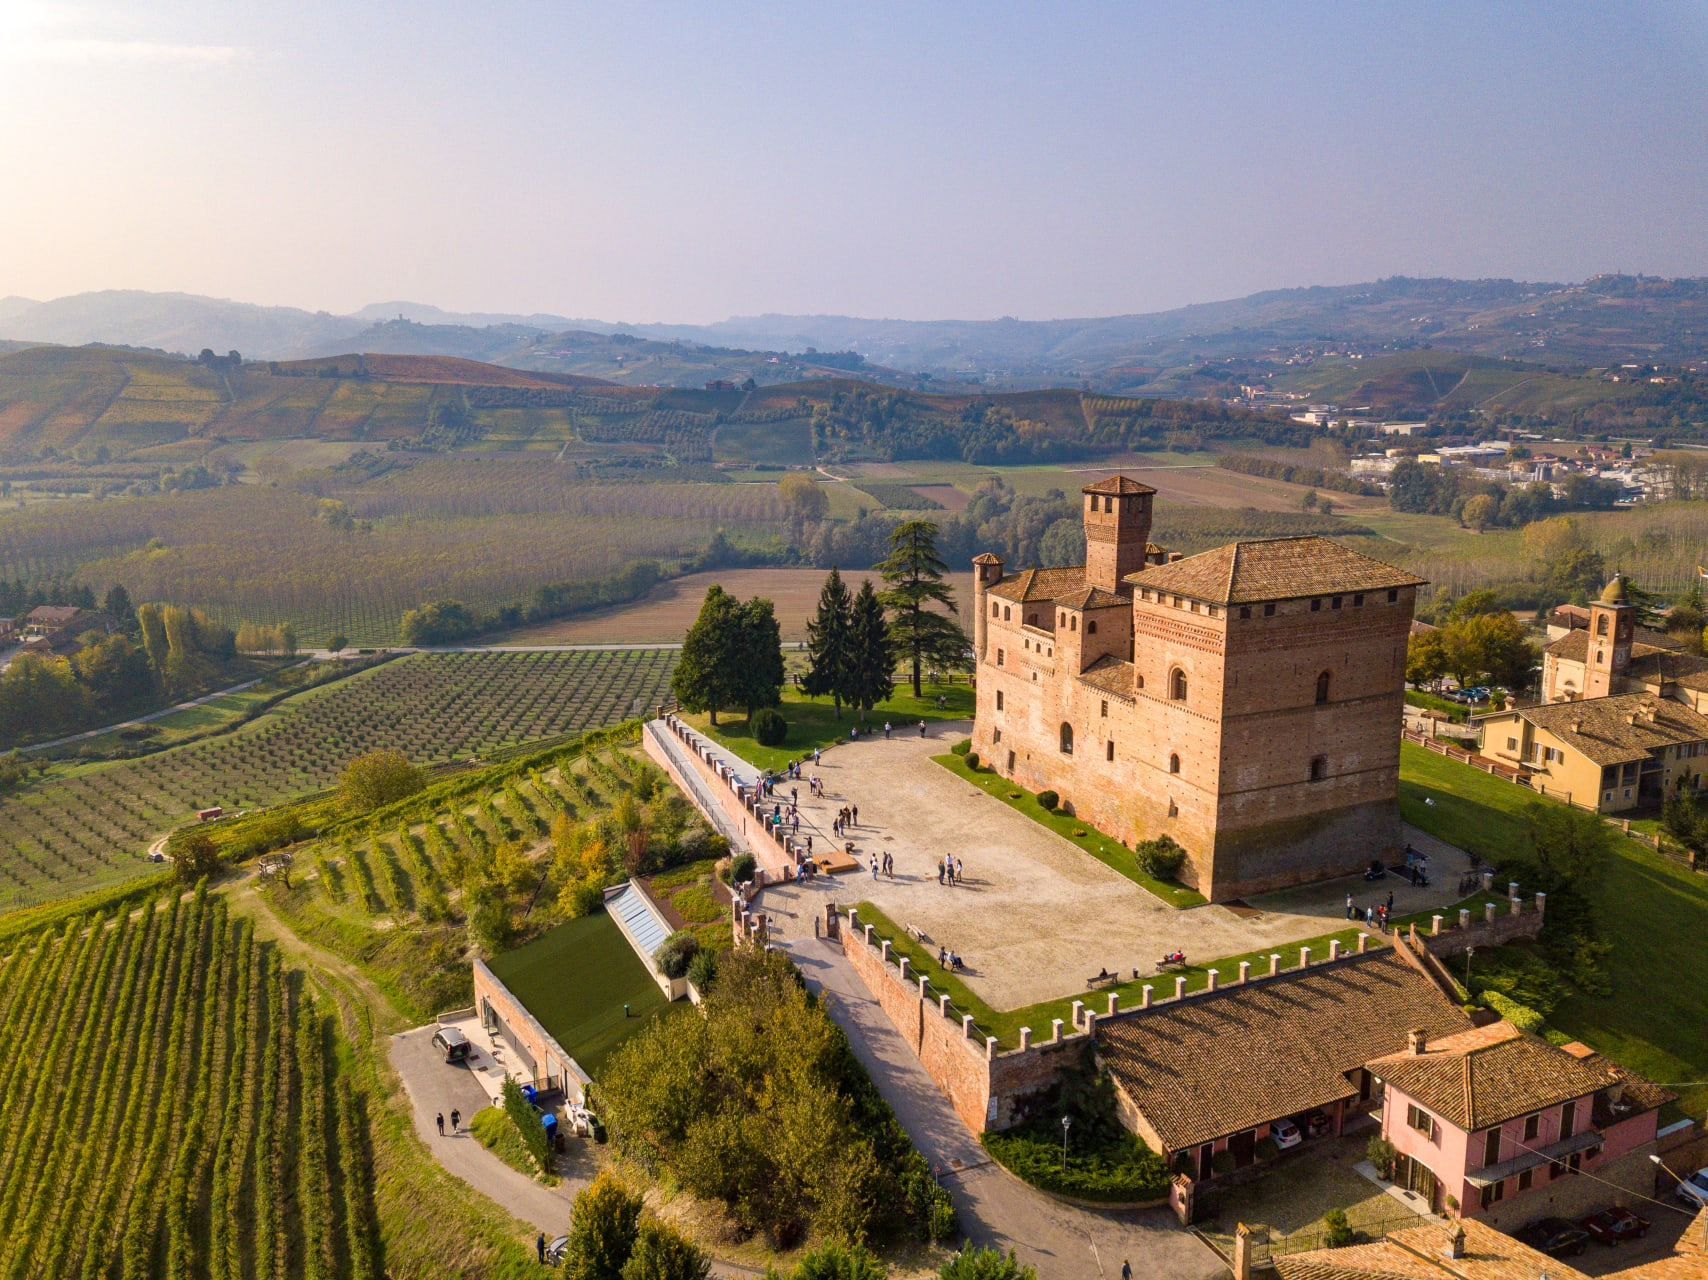 Piemonte - Barolo: Ancient castles, Rolling Hills Covered with Grapes and a Glass of Wine